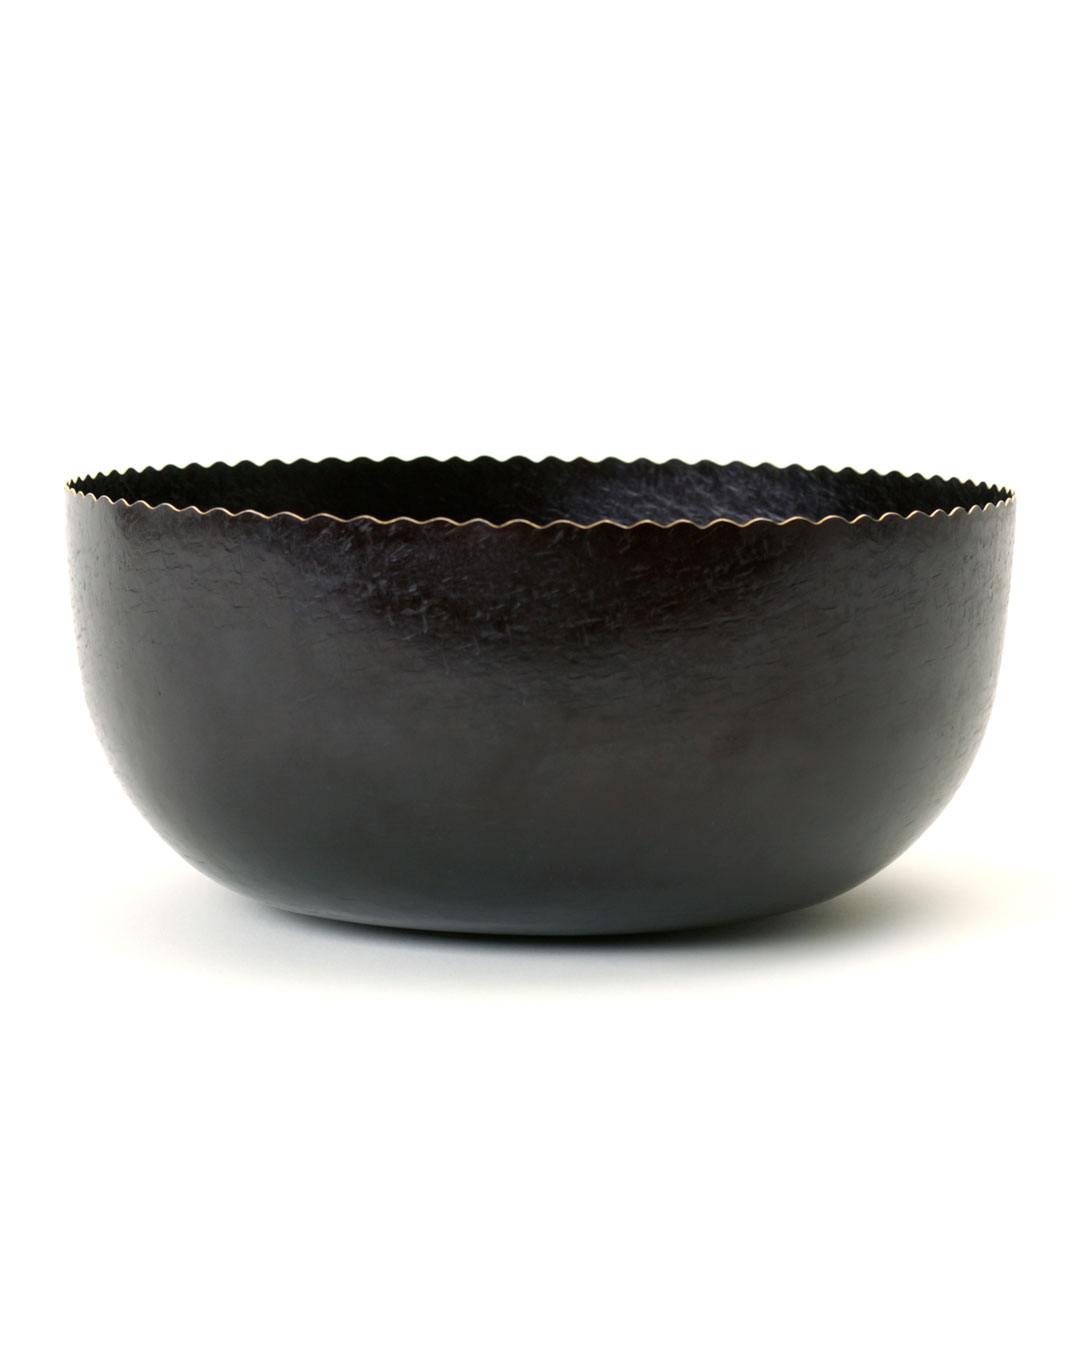 Tore Svensson, untitled, 2001, bowl; steel, 140 x 280 mm, €3500